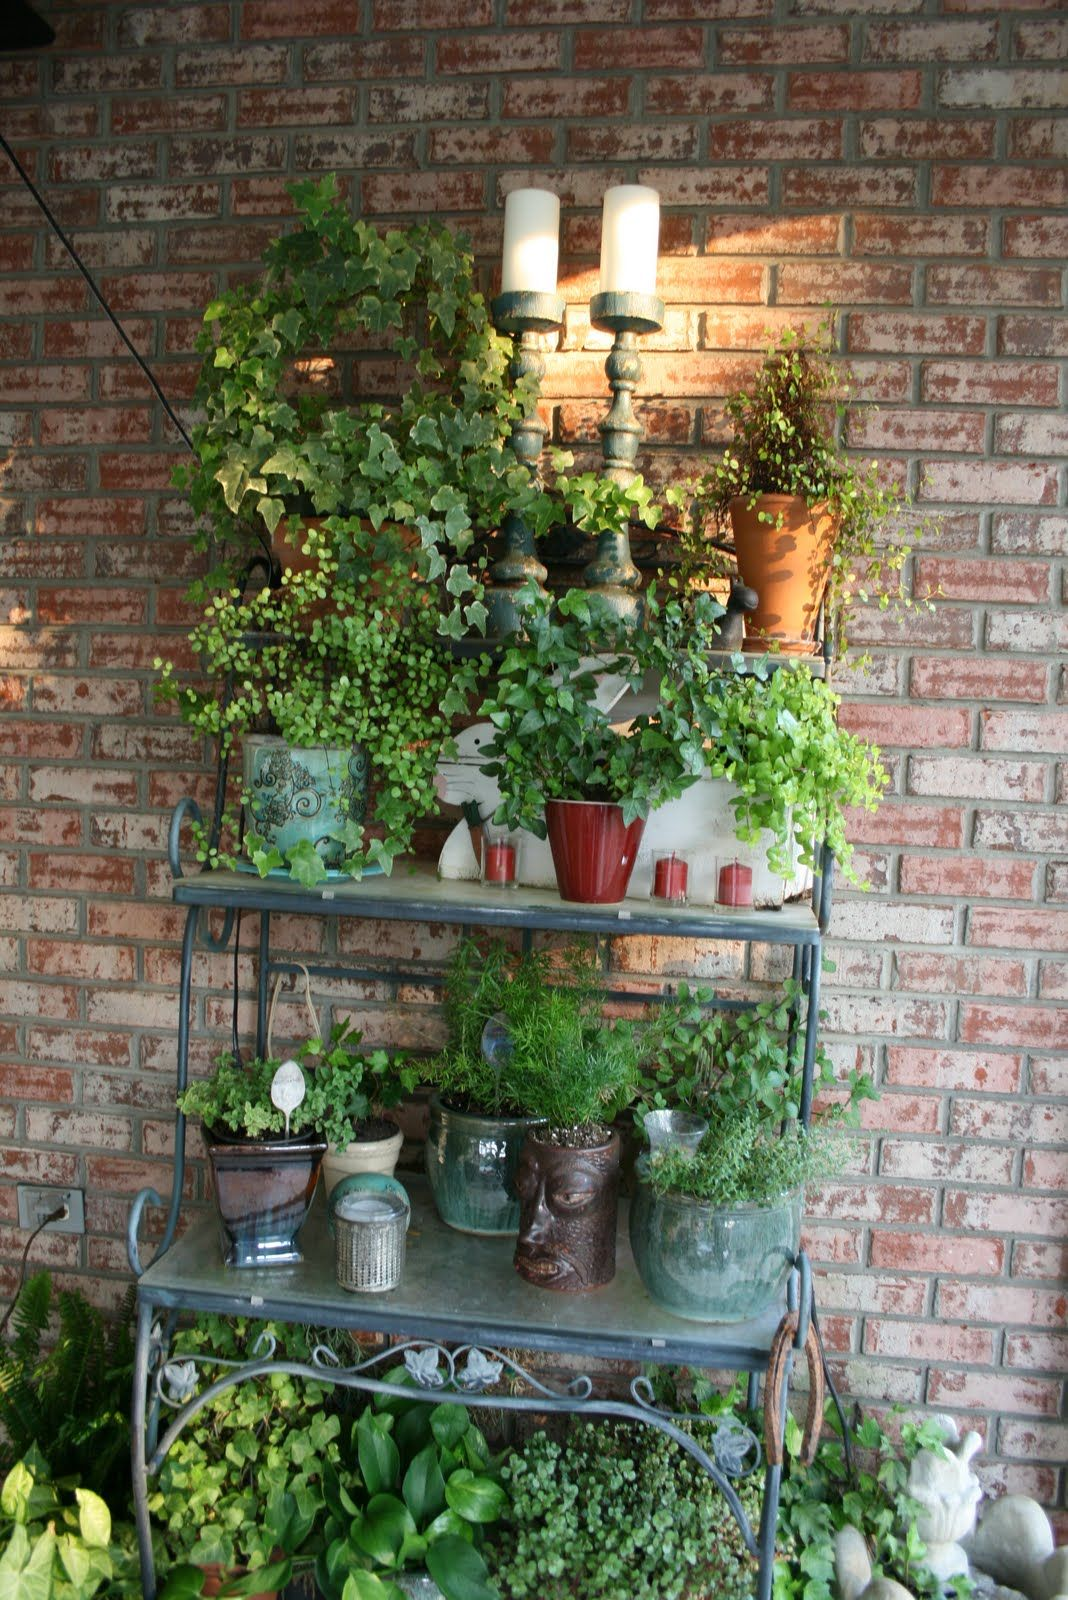 Marsha S Creekside Creations Spring Plants And Porch Patio